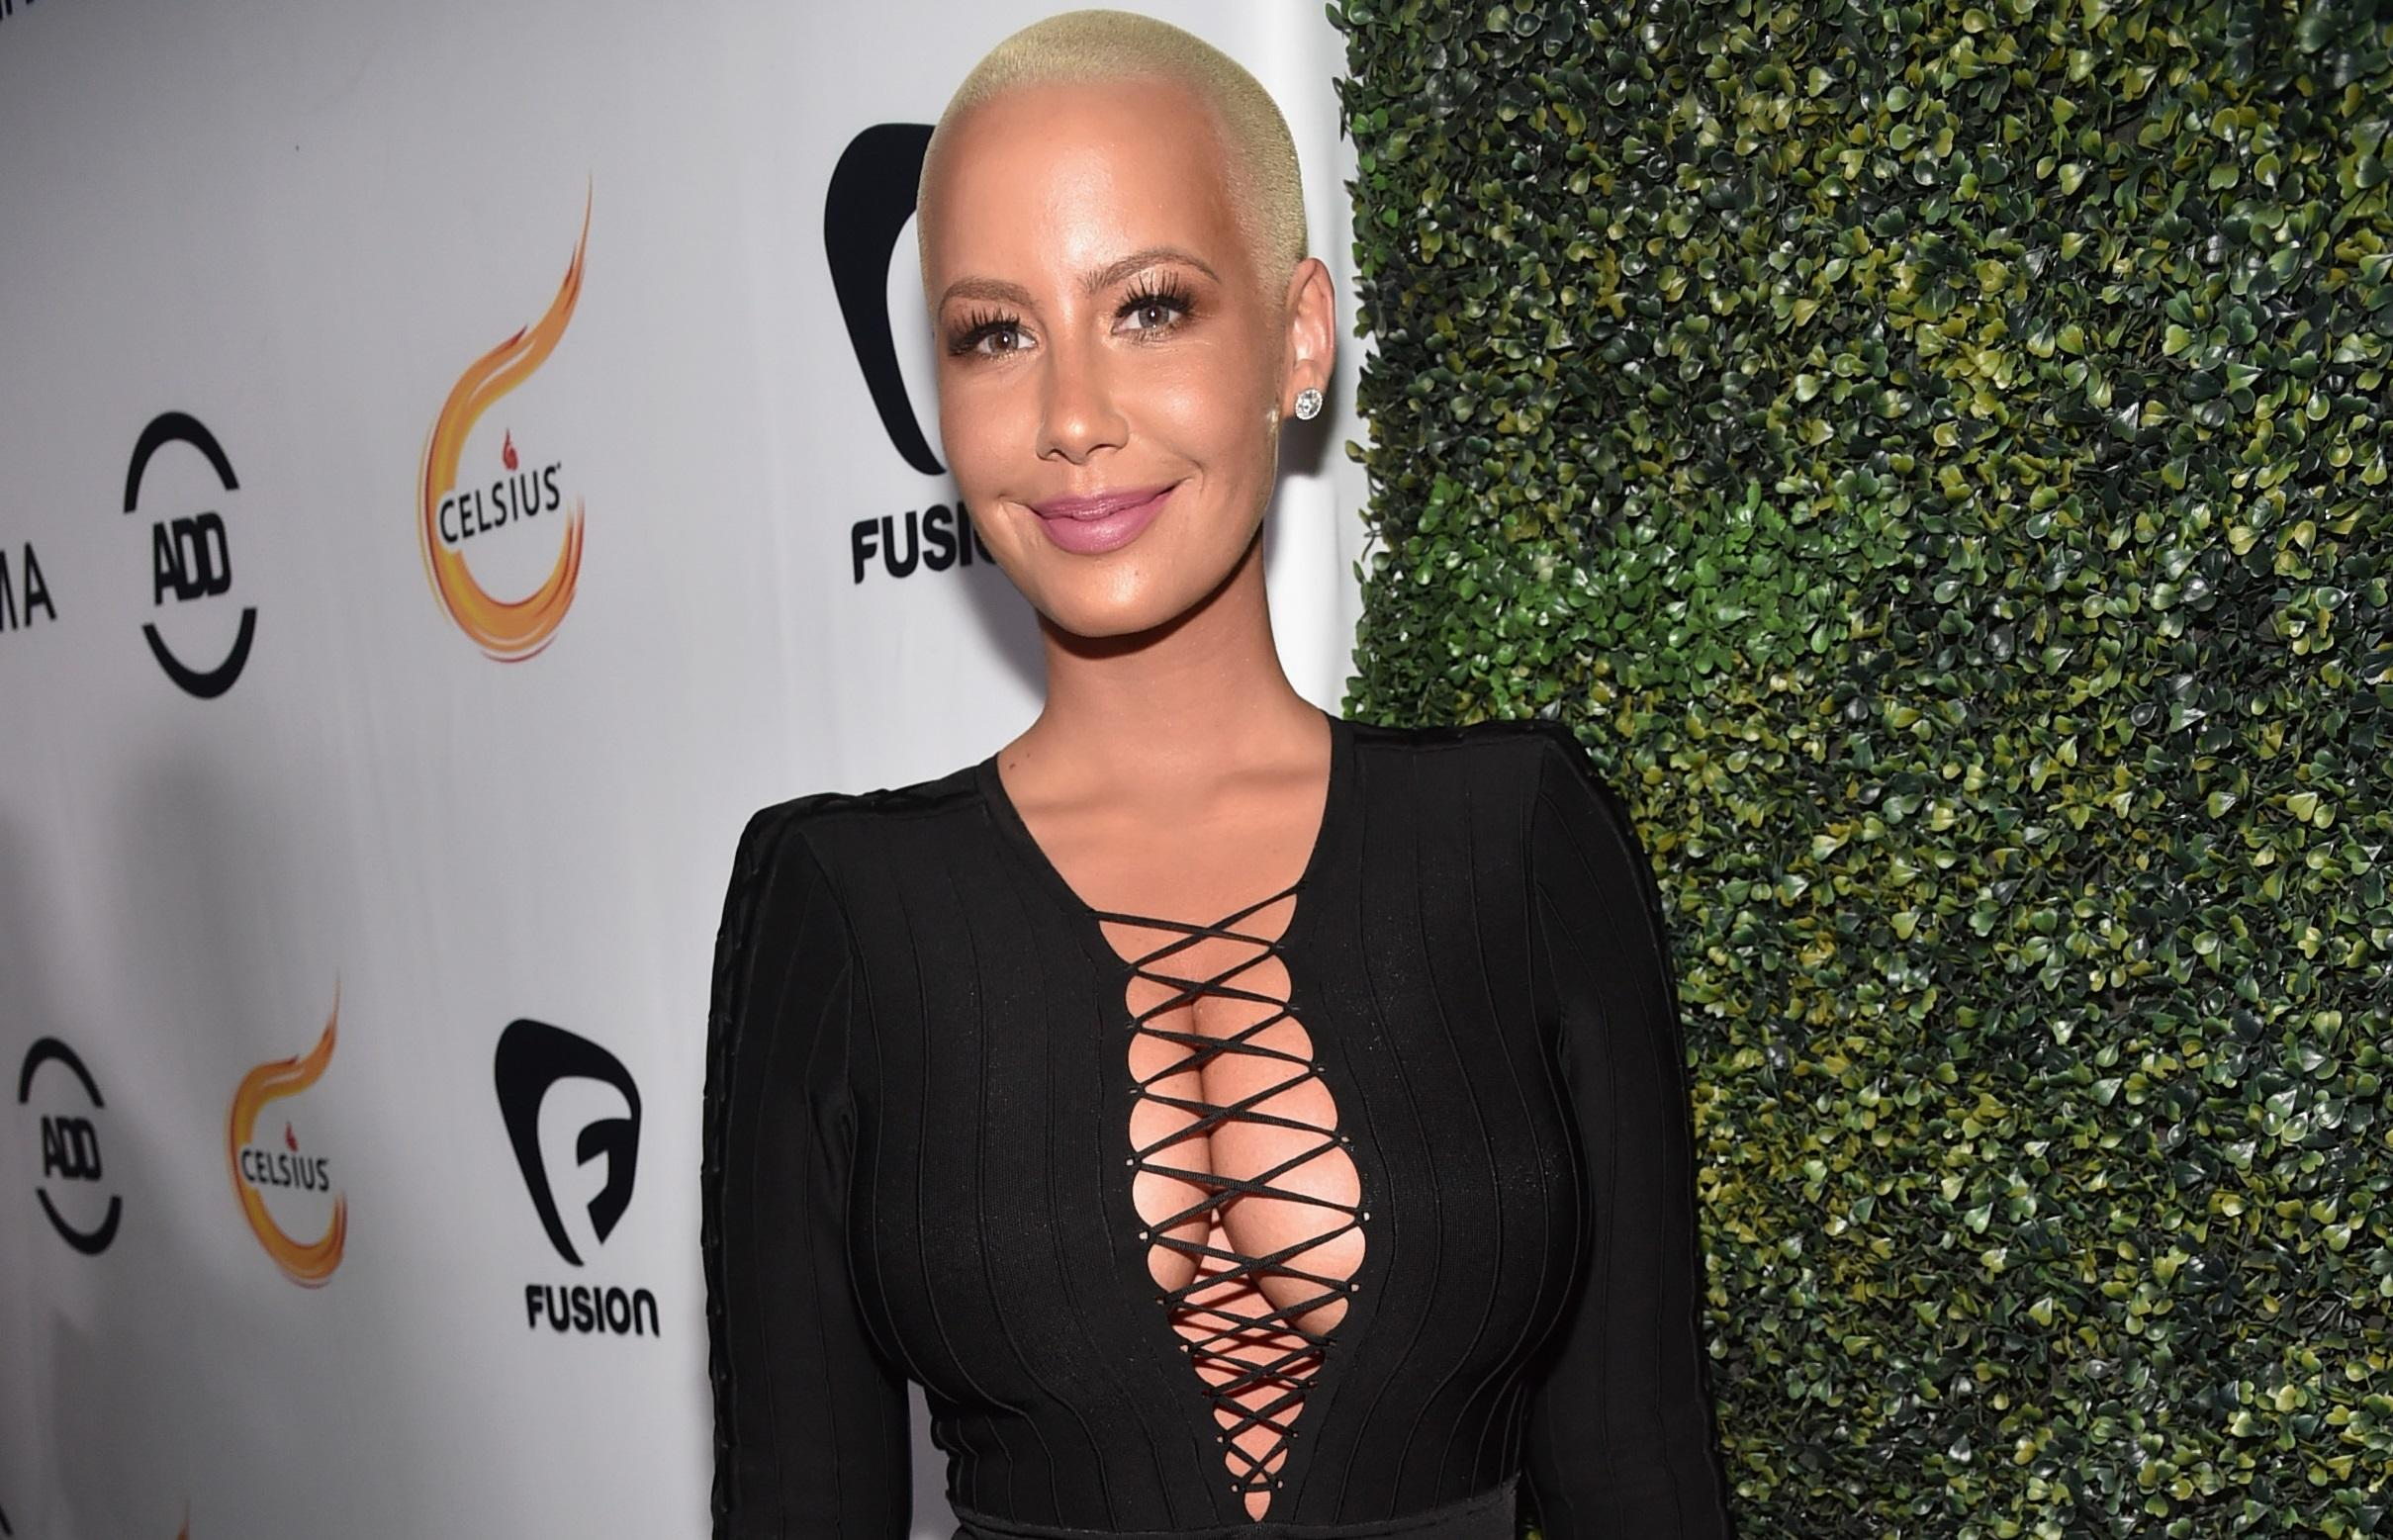 Amber Rose Wiz Khalifa news